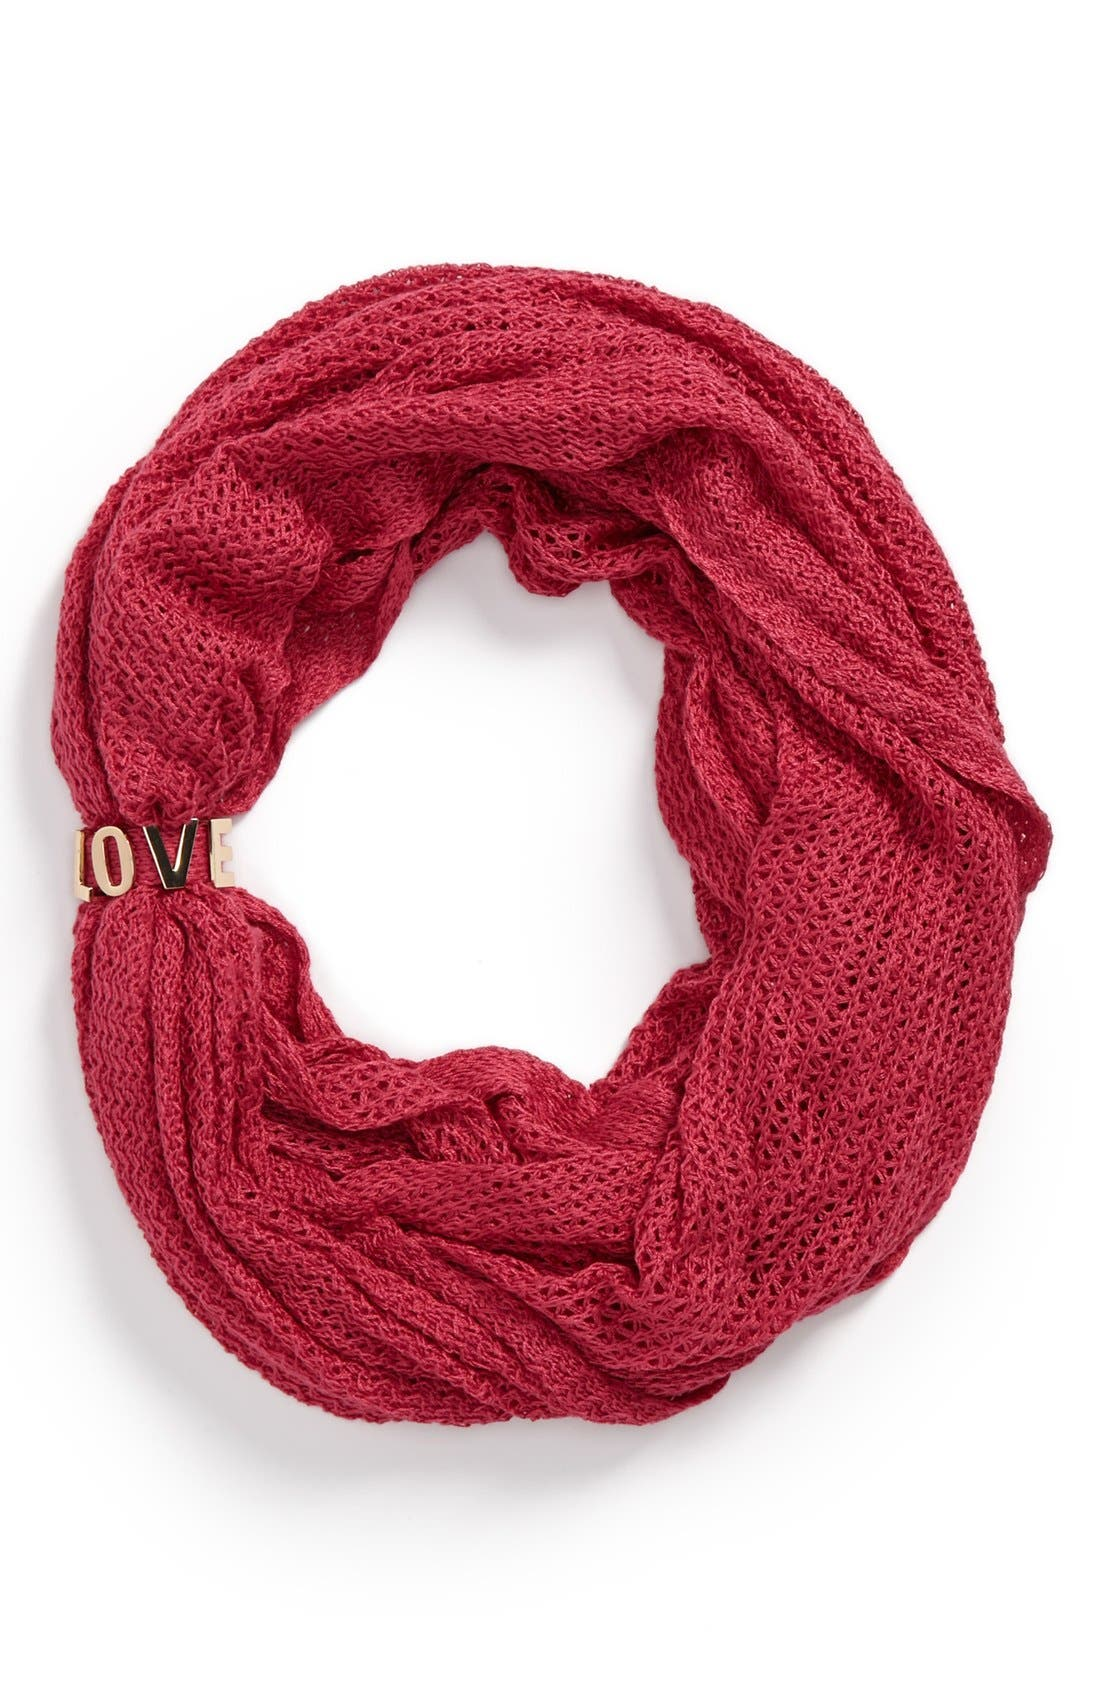 Alternate Image 1 Selected - BCBGeneration 'Affirmation' Infinity Scarf